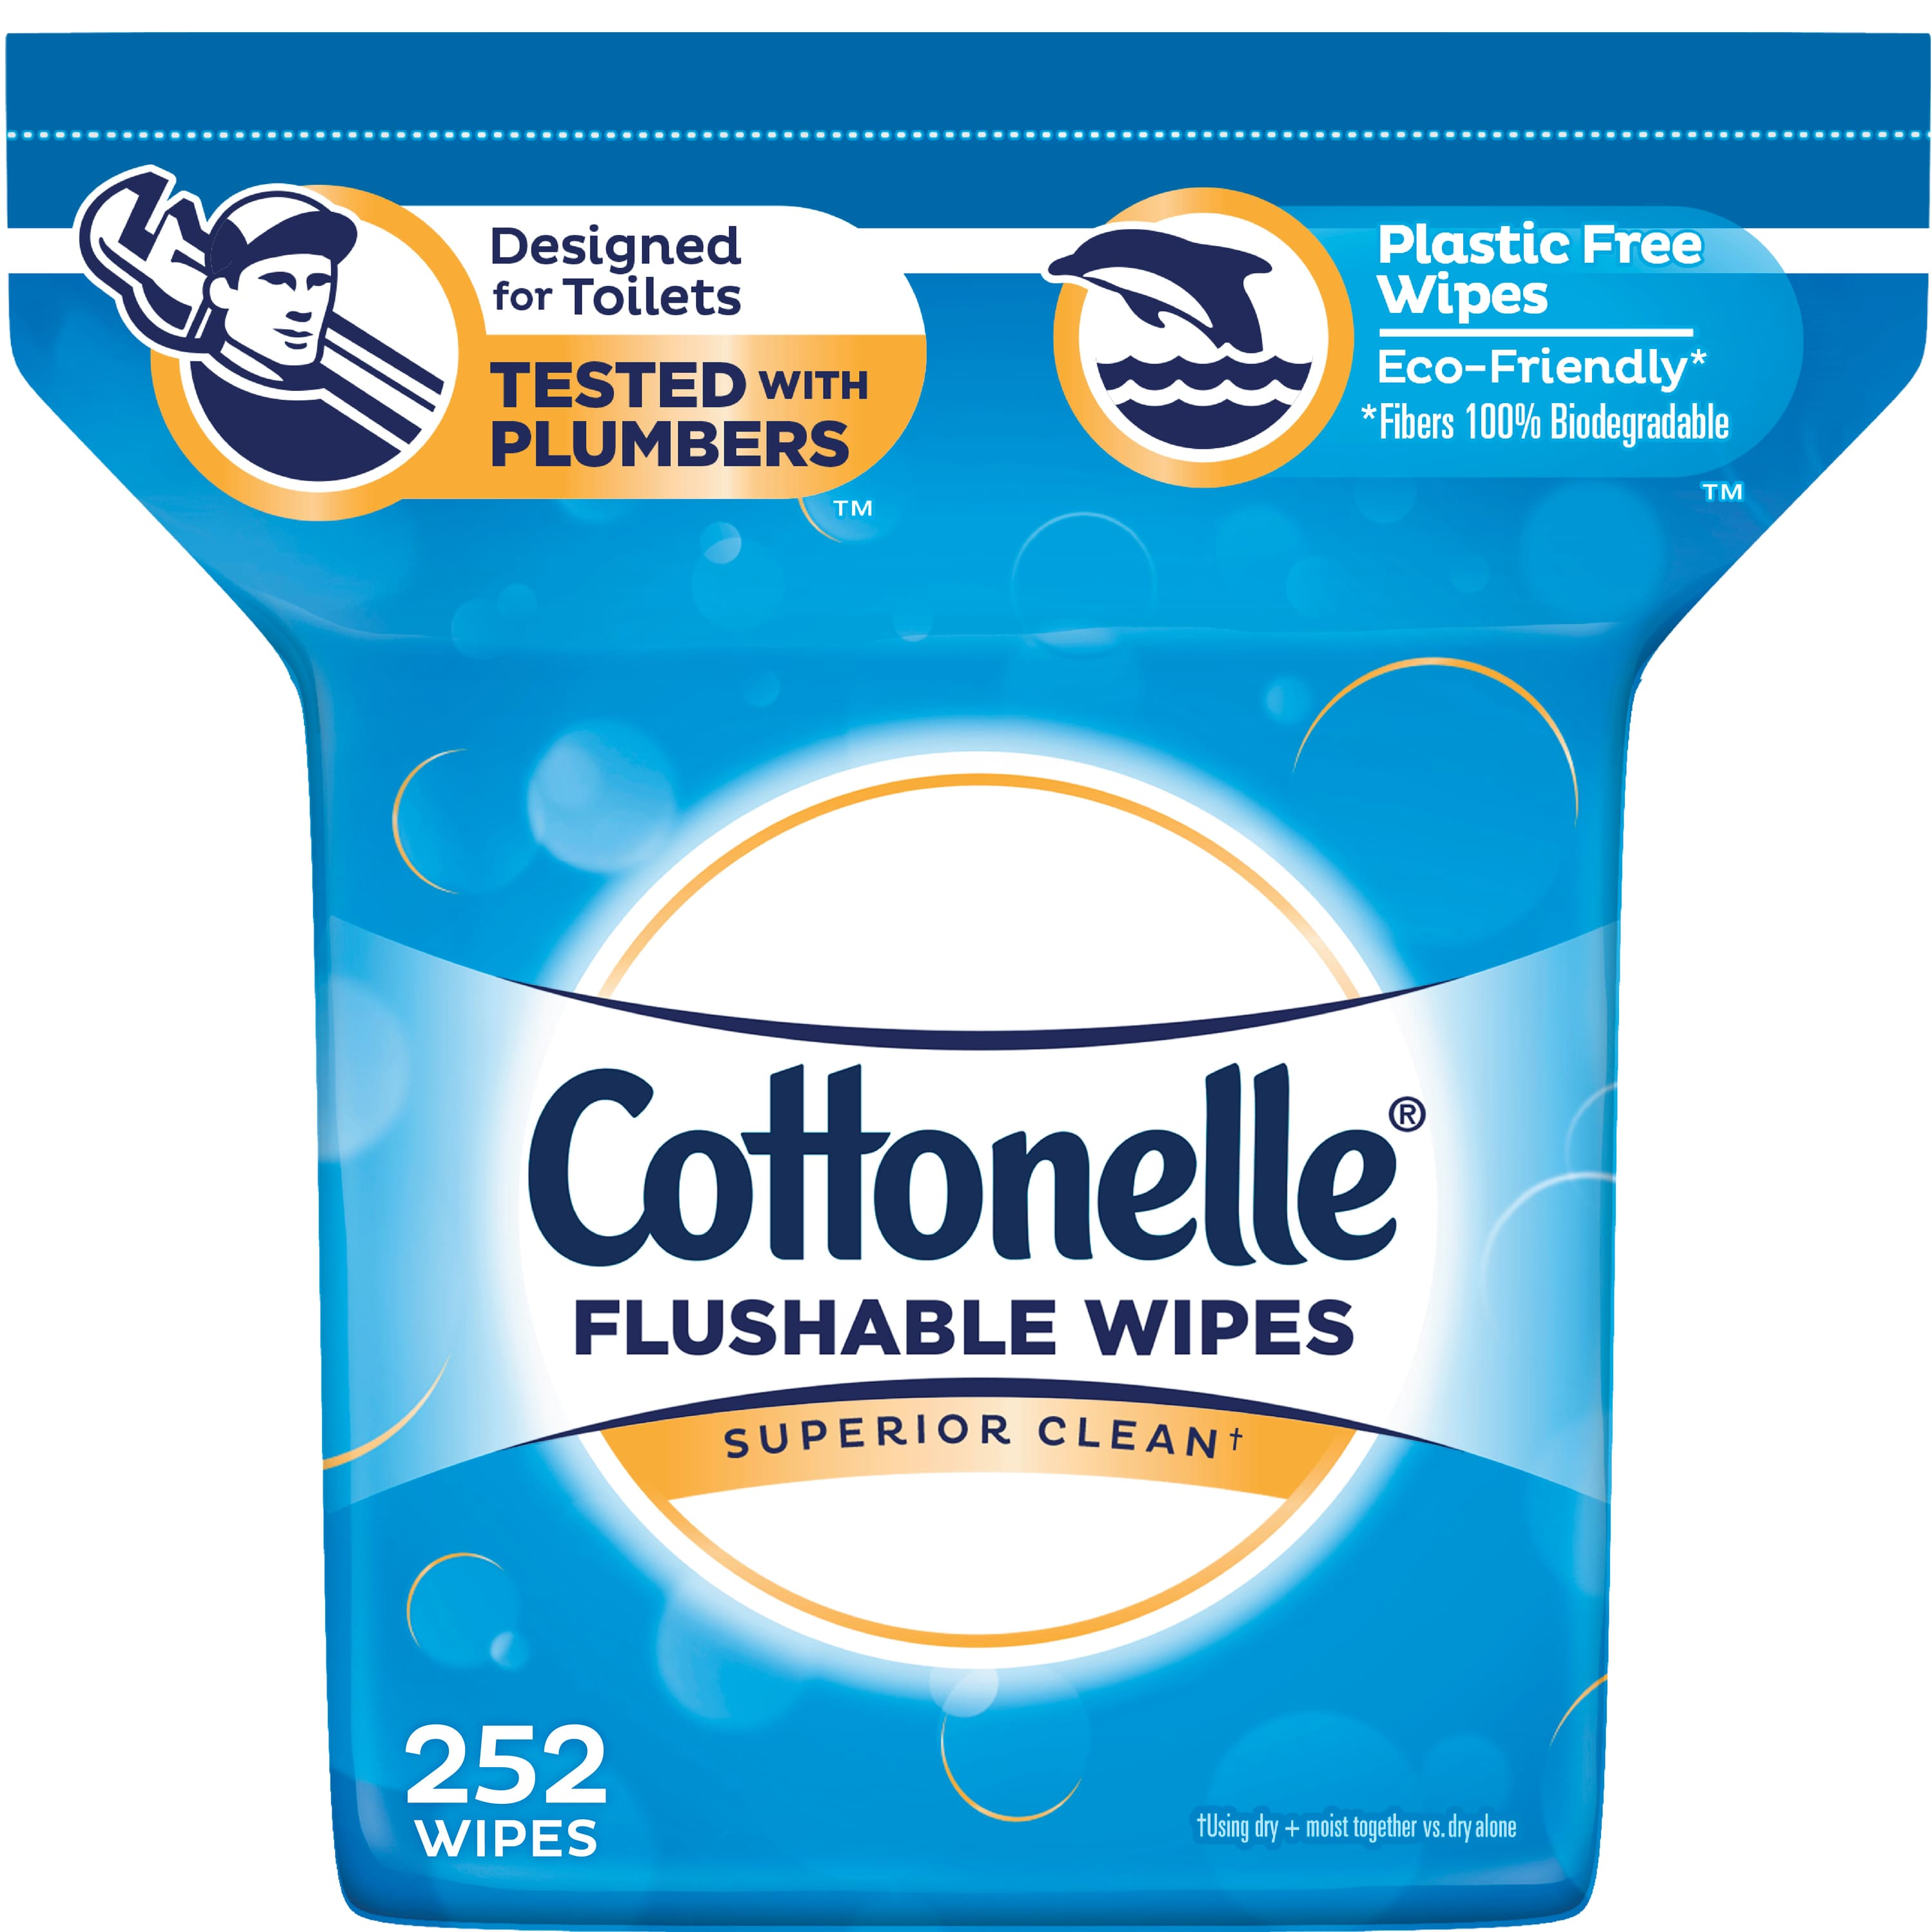 Wet Wipes Alcohol Free 336 Ct Cottonelle FreshCare Flushable Wipes for Adults